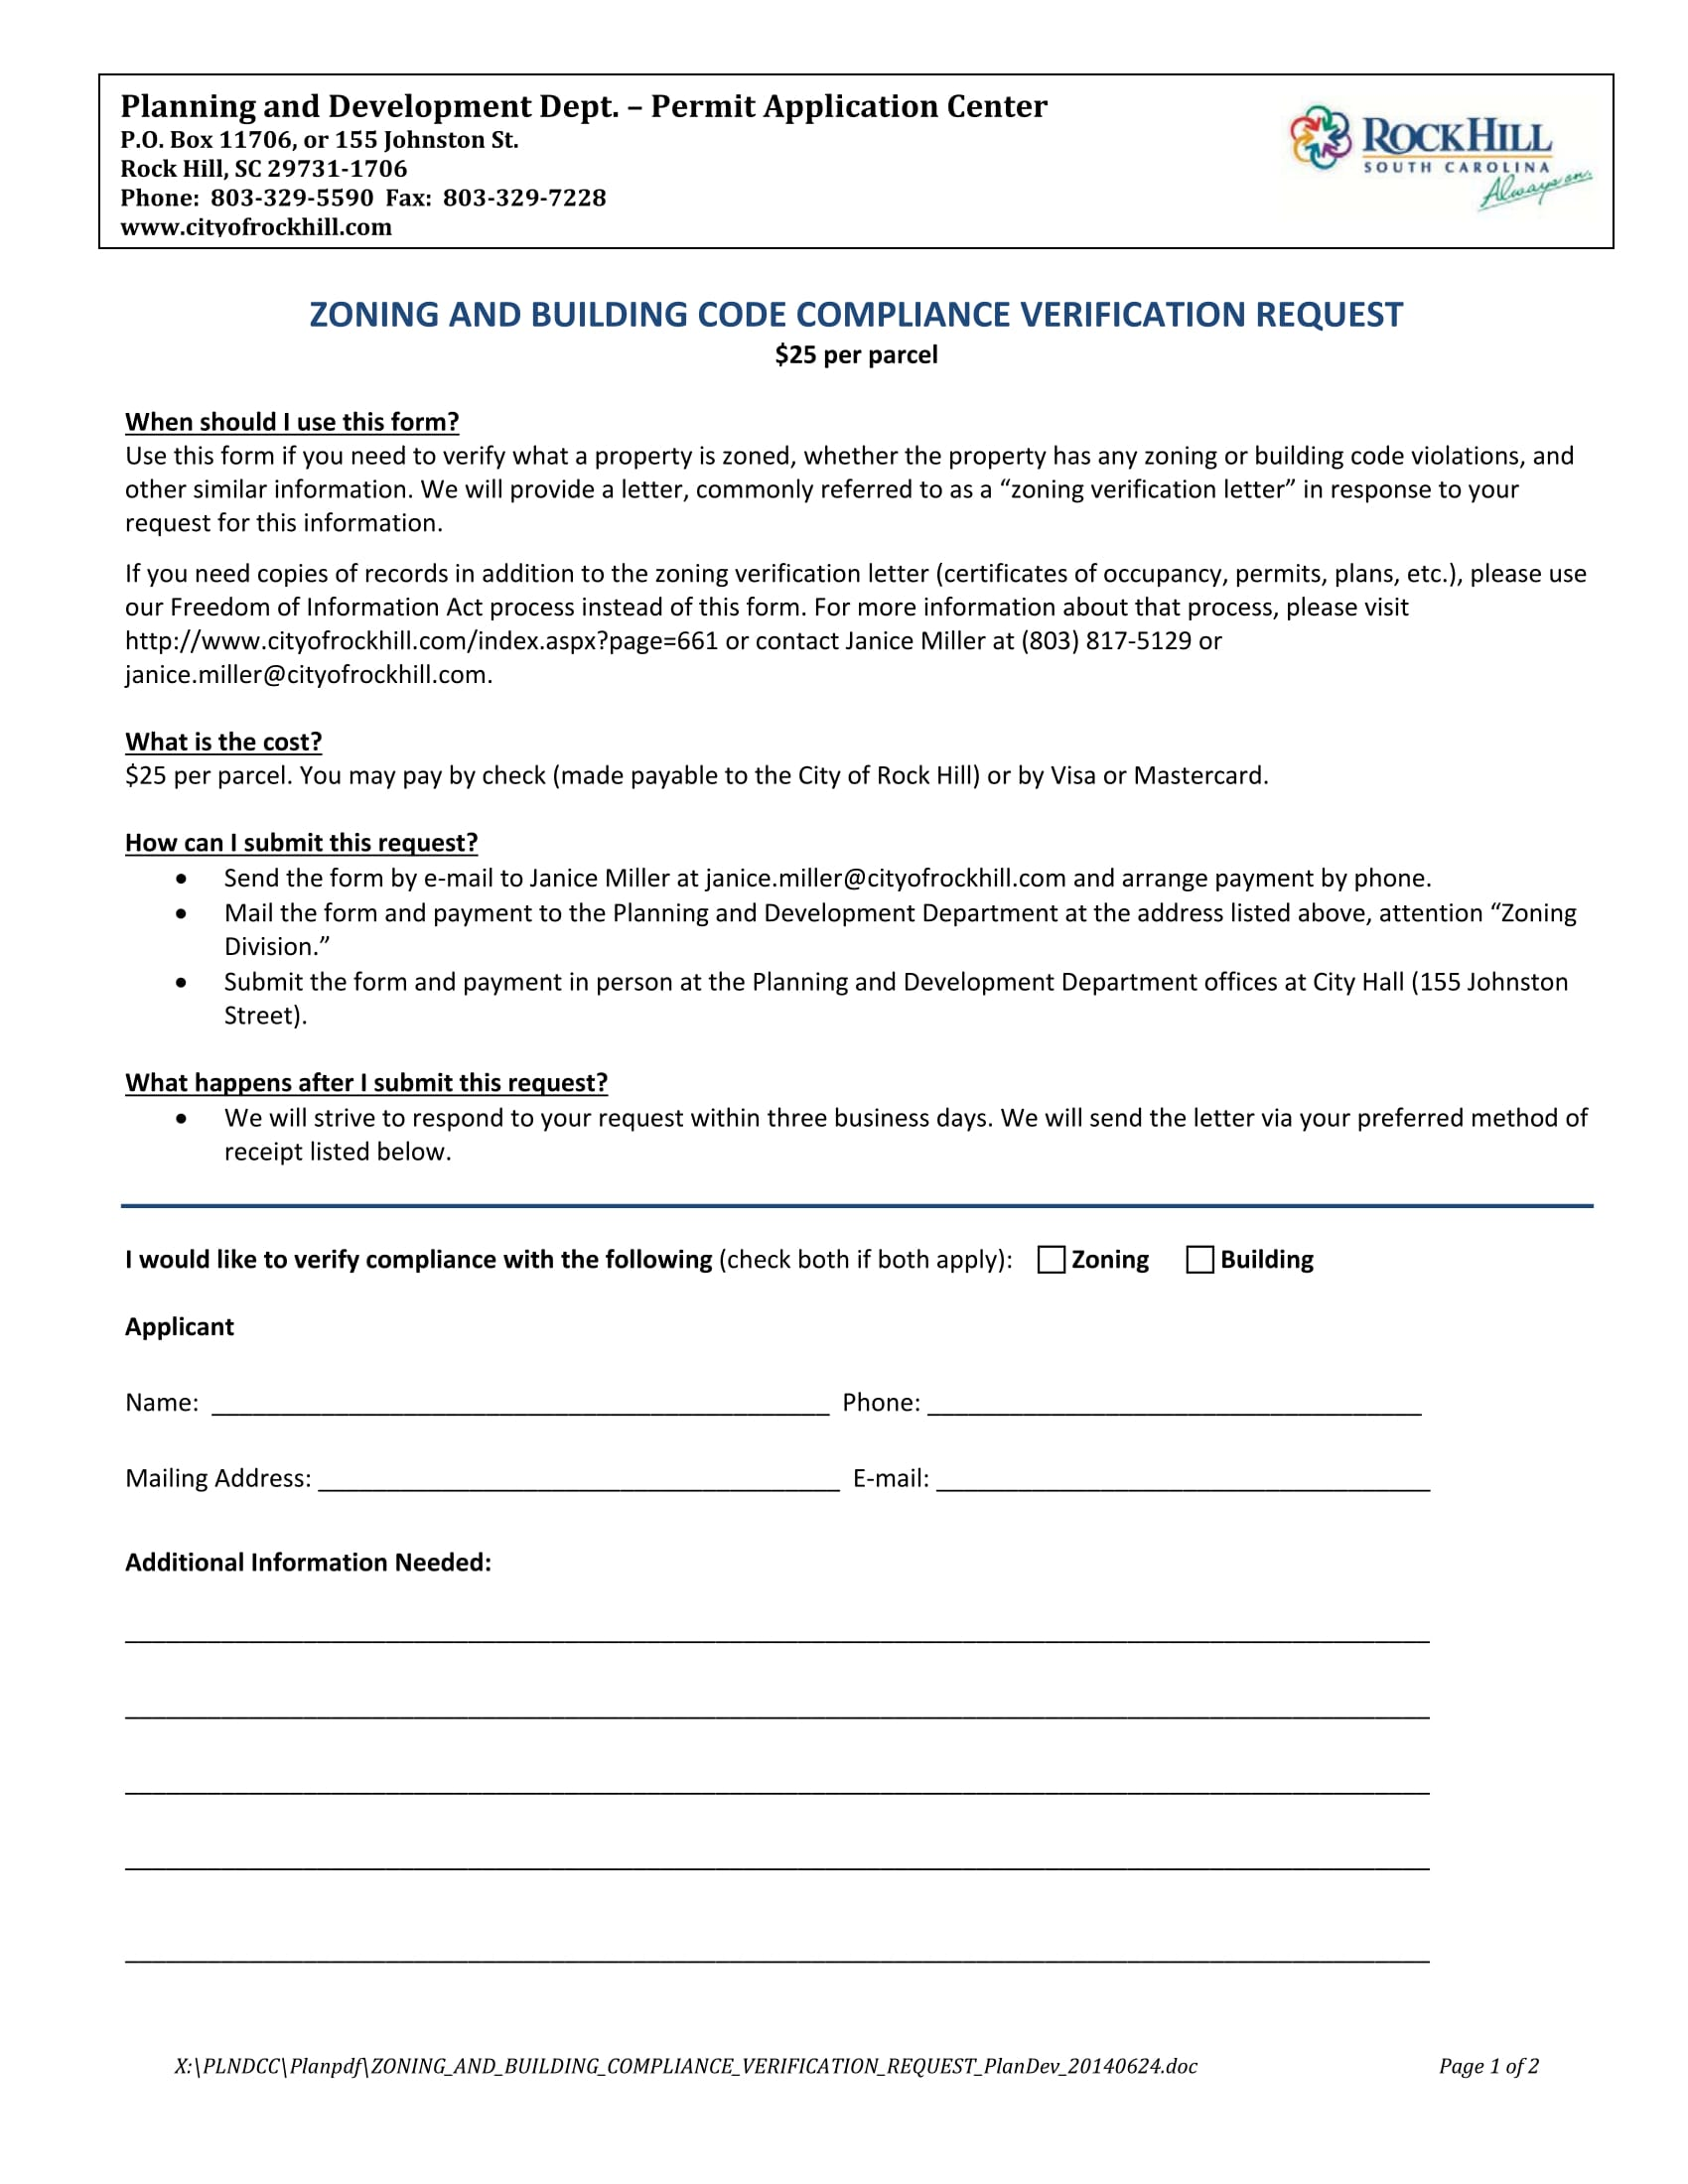 Definition Importance And Purpose Of A Compliance Verification Form